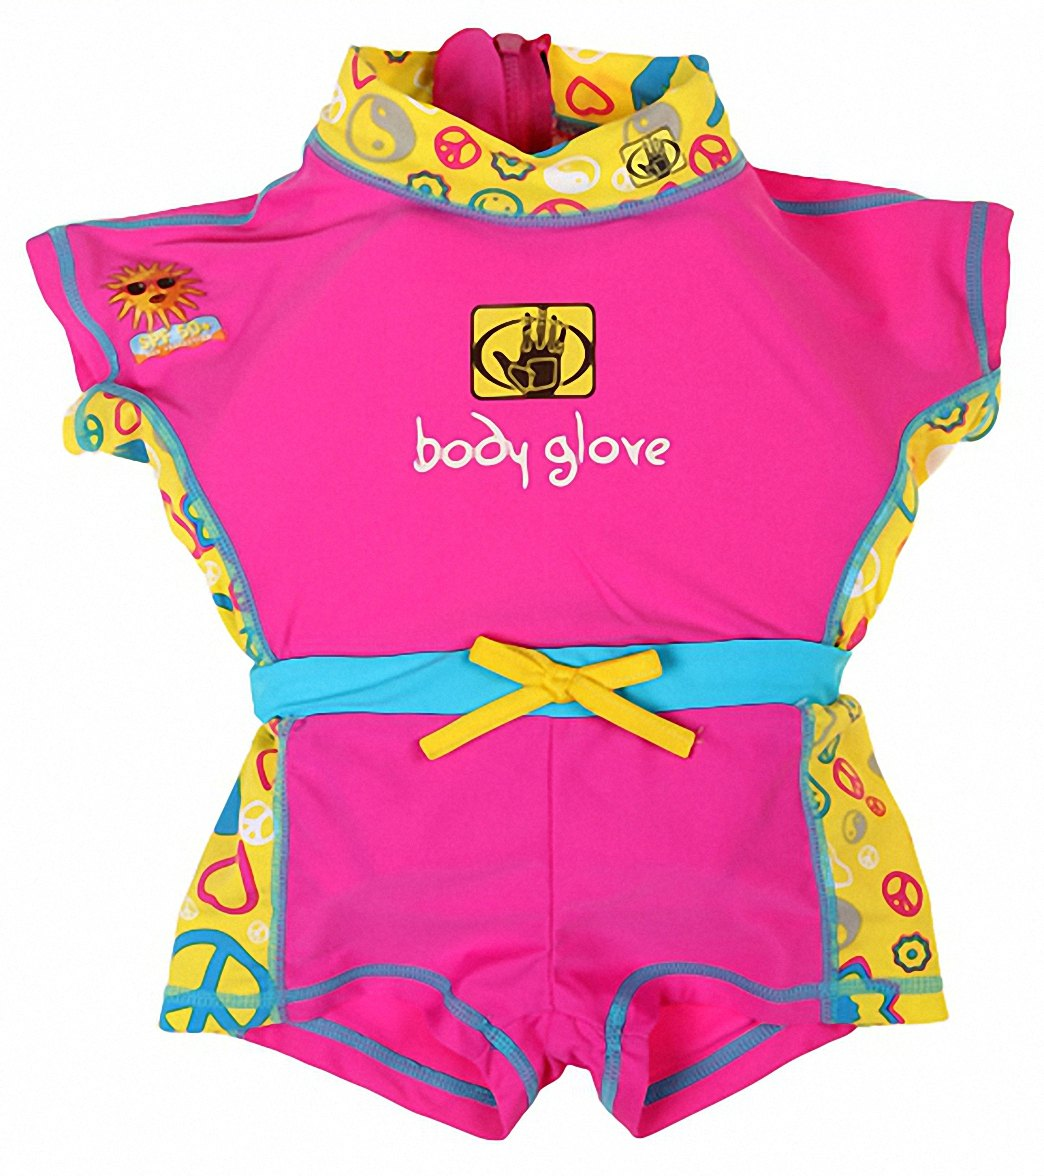 dfcca979a3 Body Glove Girls  Floatation 2 Piece Swimsuit at SwimOutlet.com